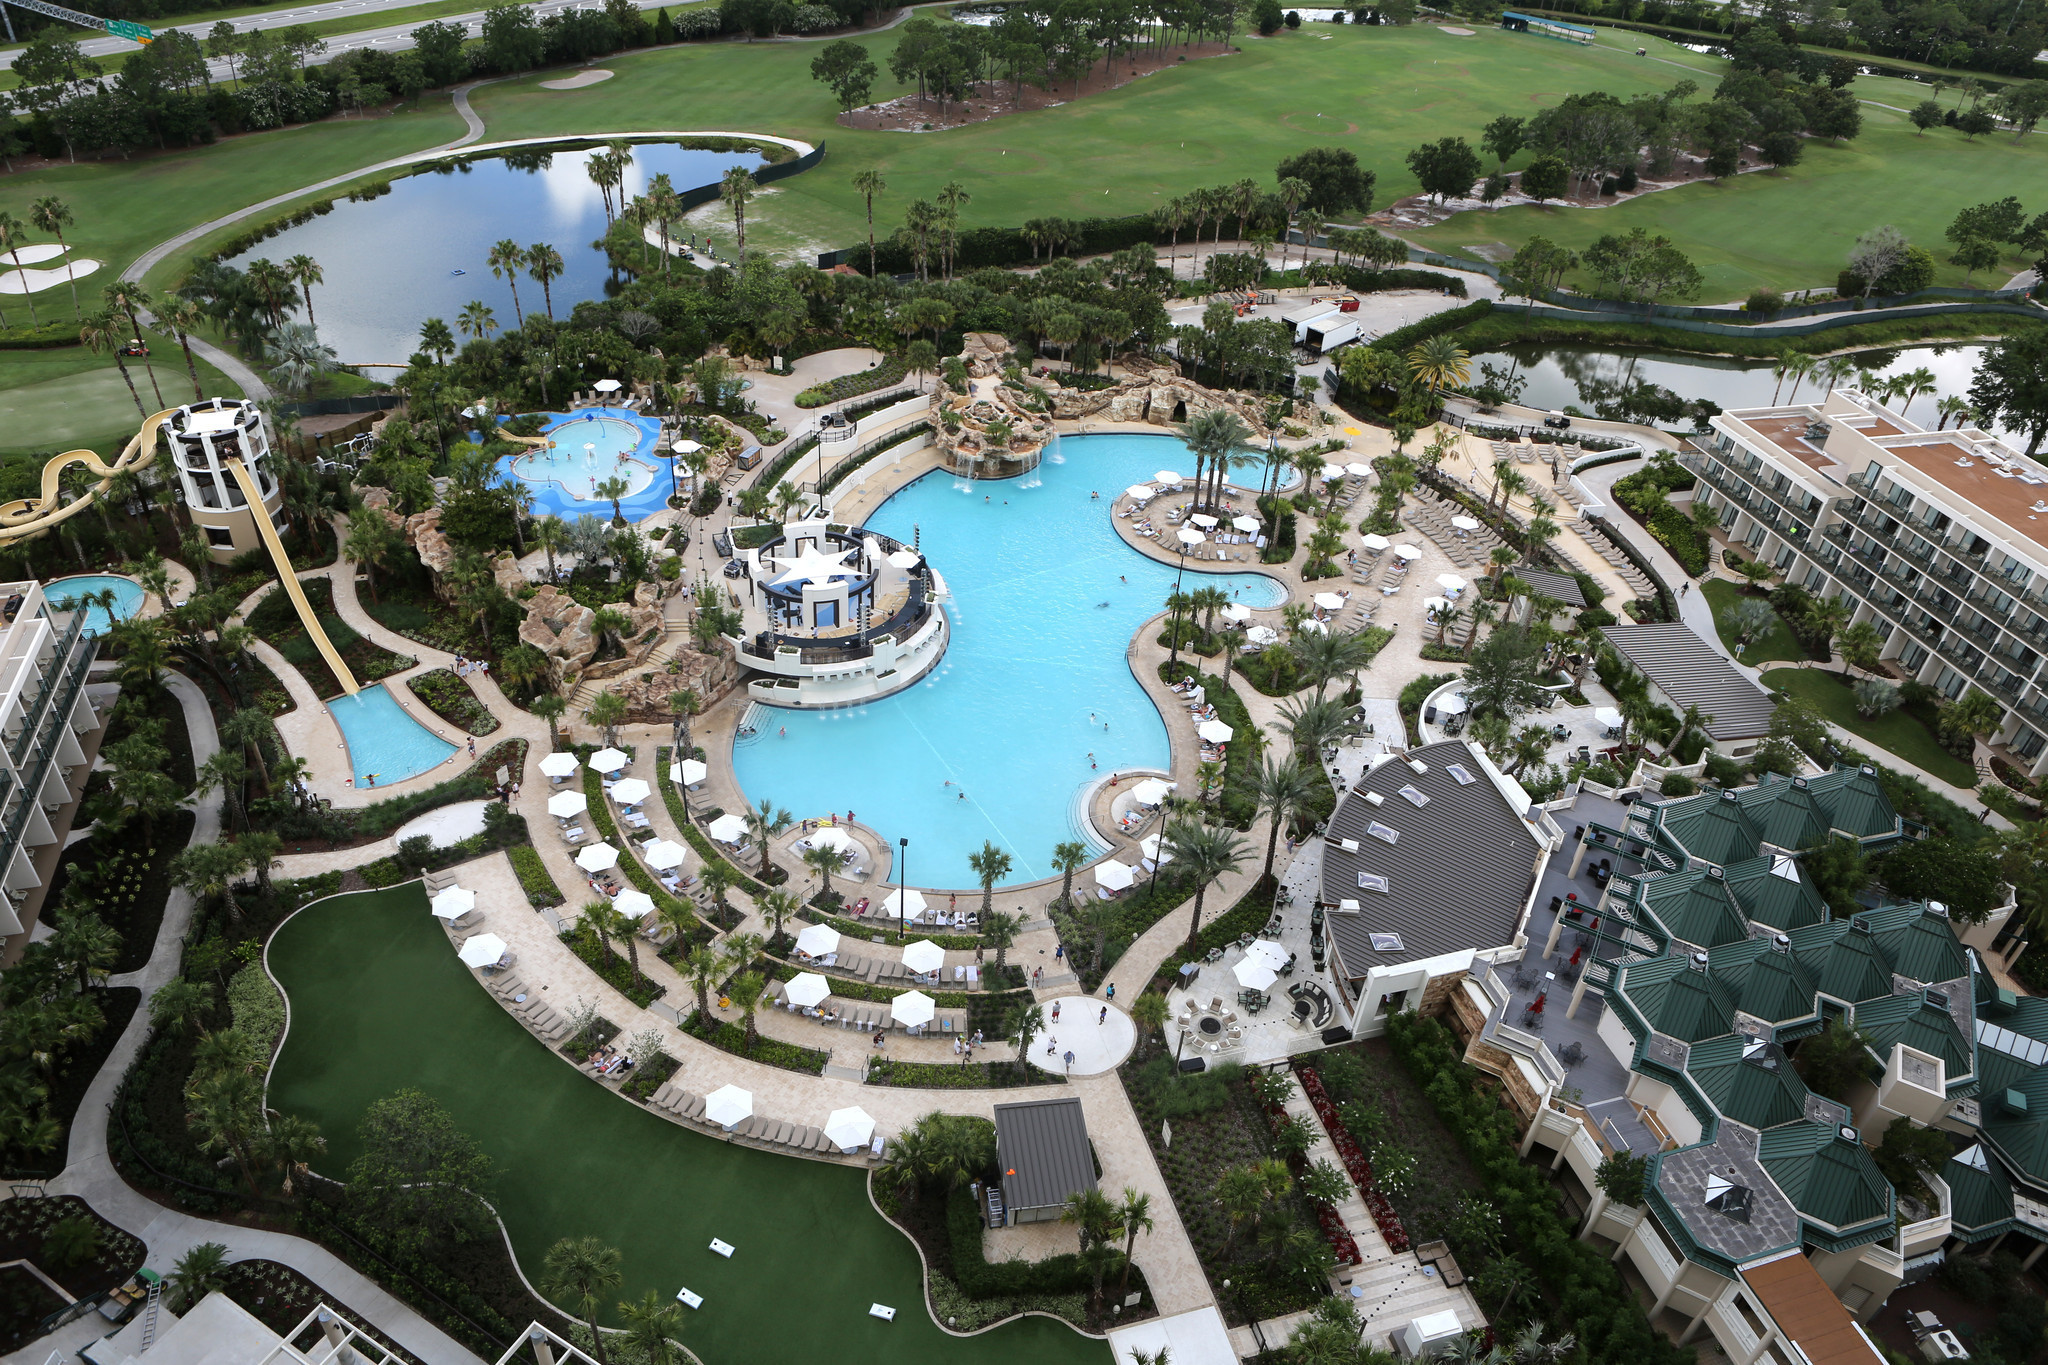 Special Offers, Deals & Discounts | Walt Disney World ResortCourtesy Transportation· Even More Extra Park Time· Complimentary Wifi.